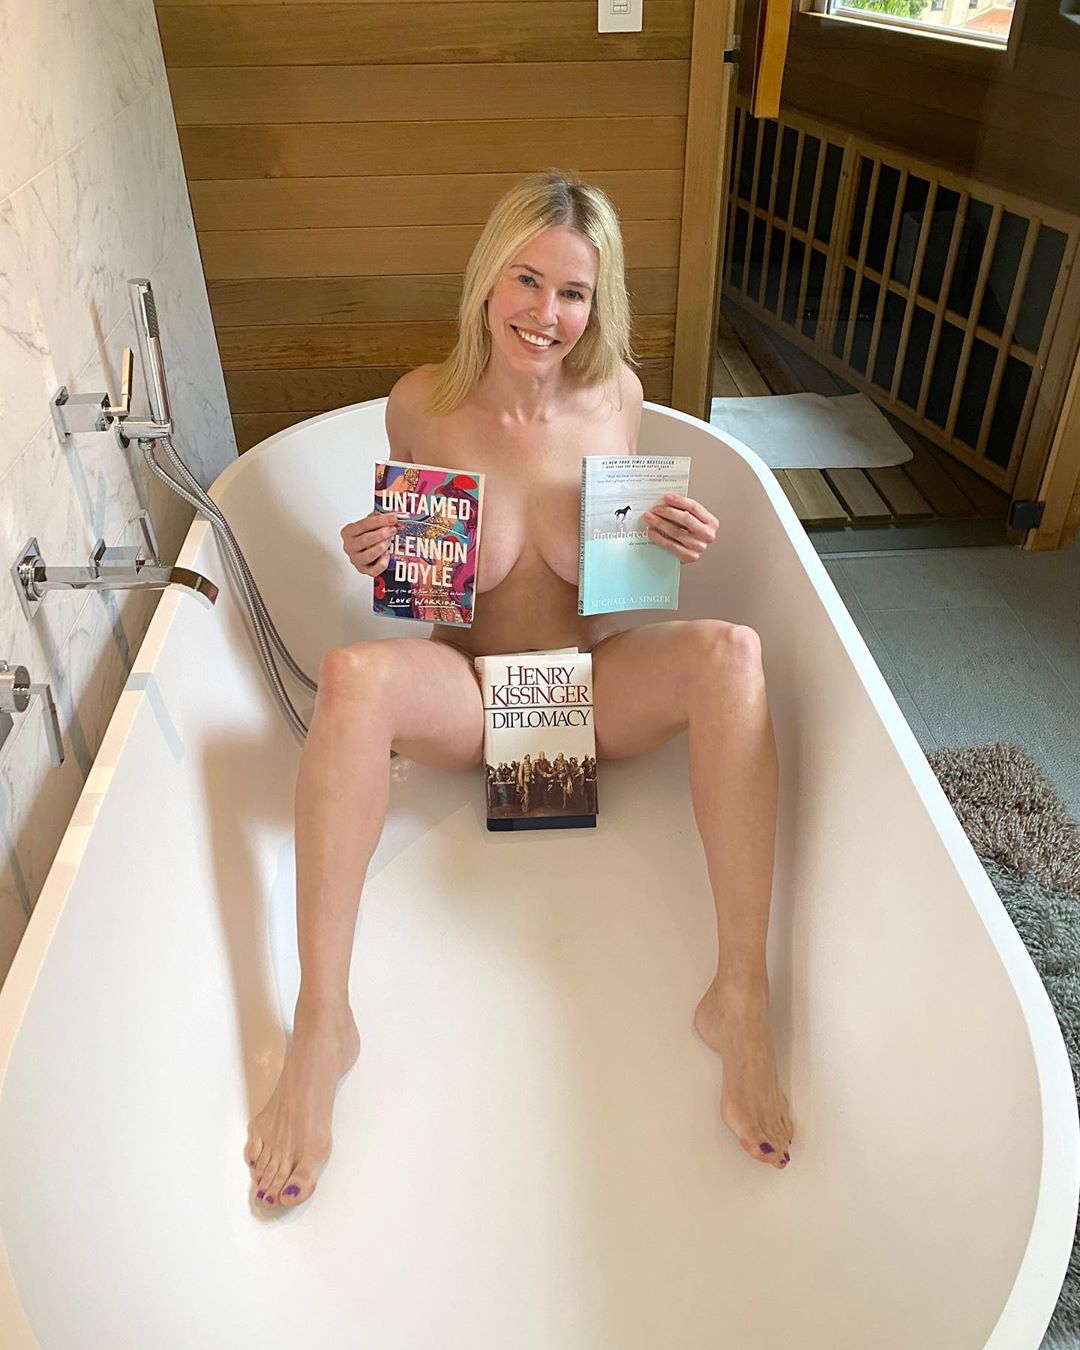 Chelsea Handler Photographed Topless MILF body with some Books – Instagram April 2020